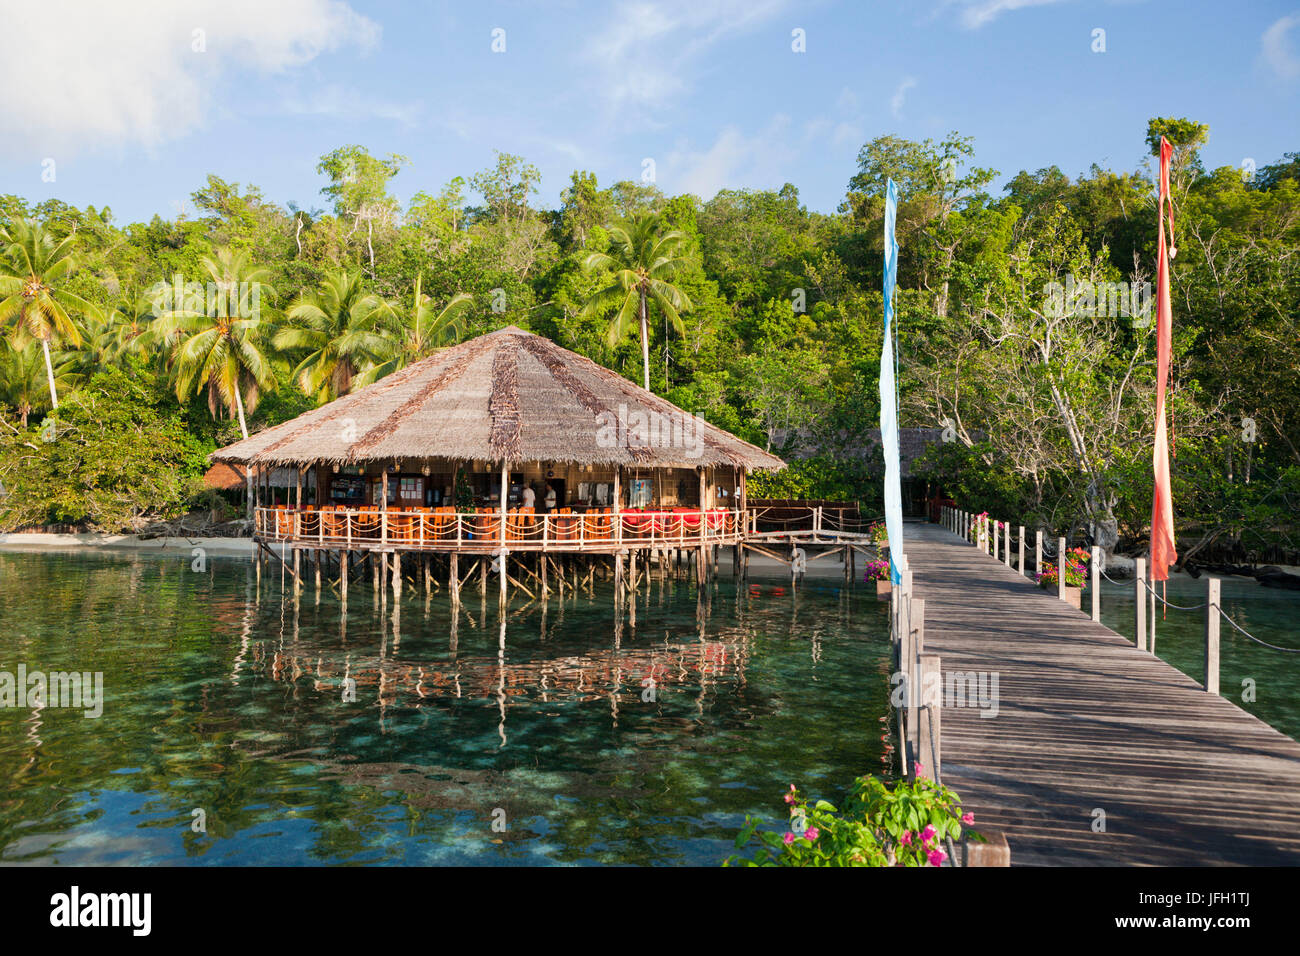 Restaurant in the Papua Explorers Resort, Gam, Raja Ampat, west Papua, Indonesia - Stock Image